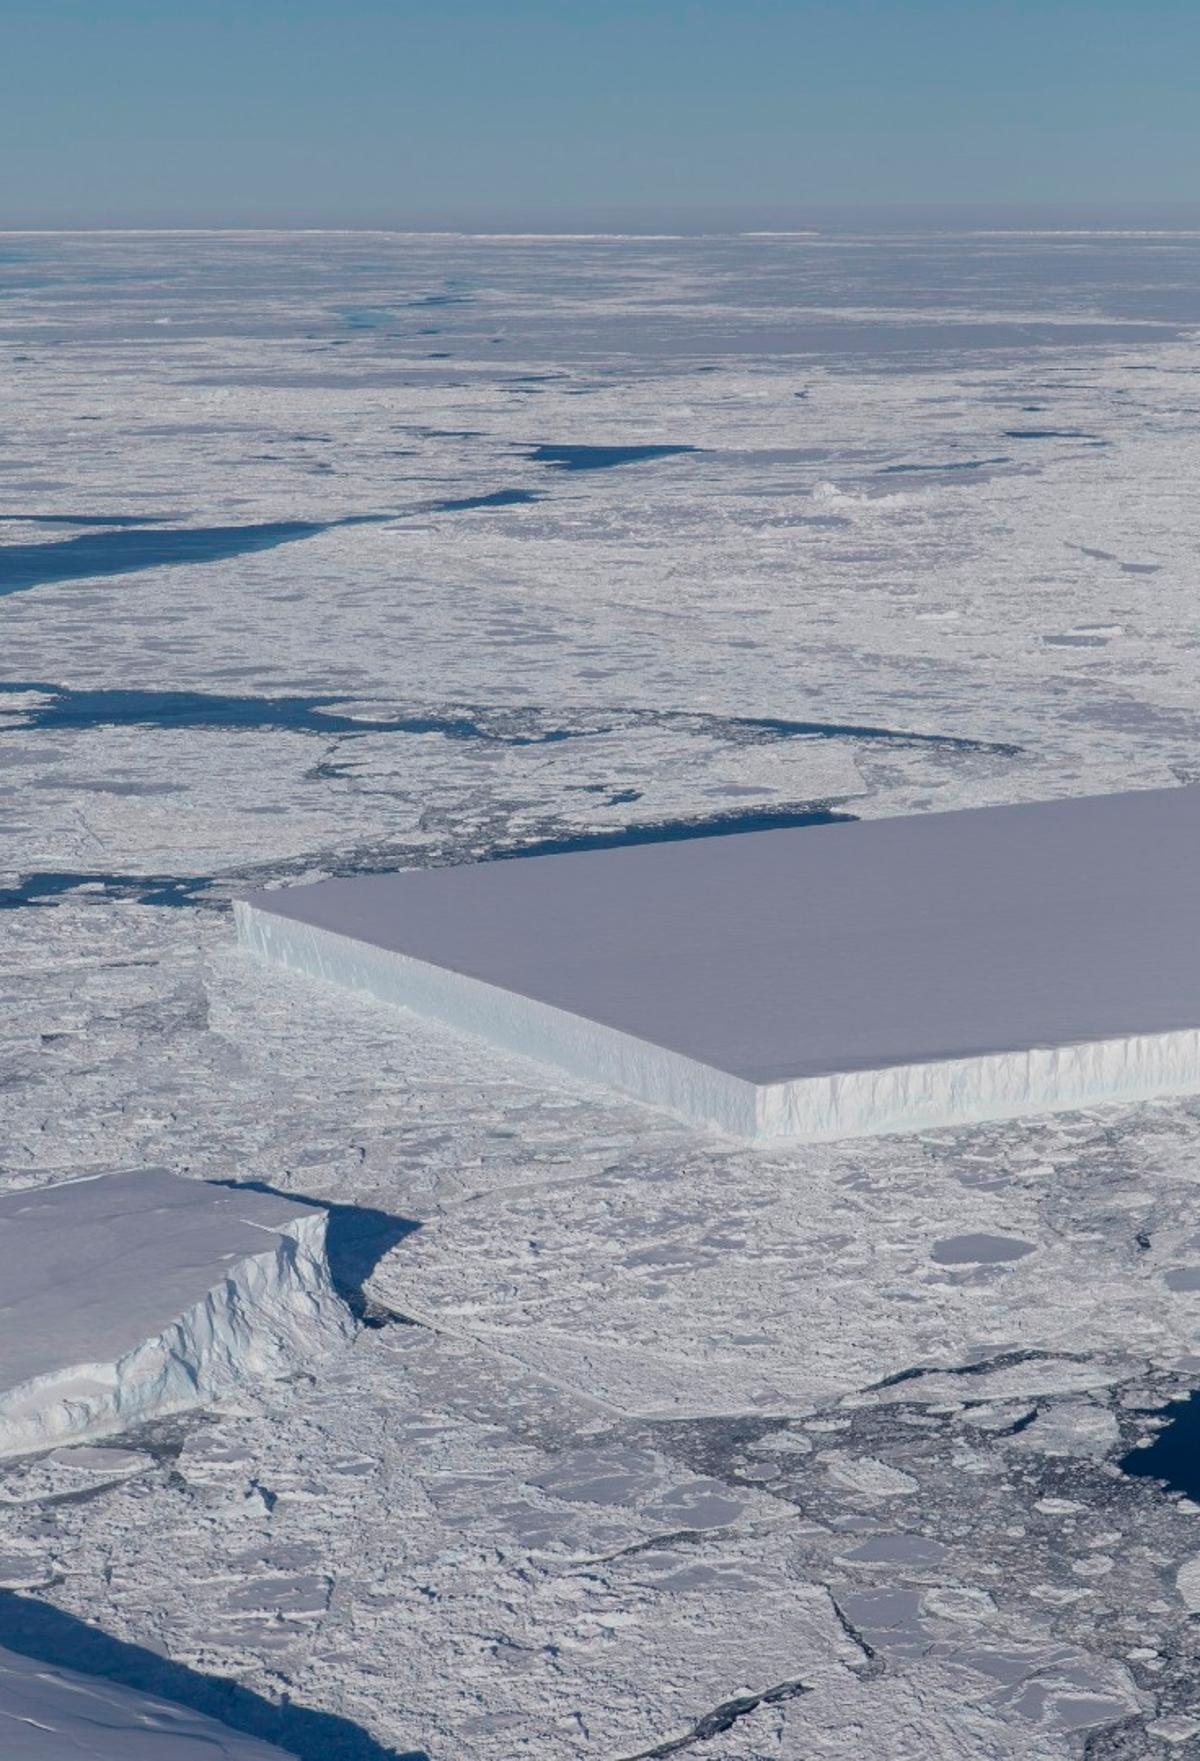 This bizarrely, but not unusual,rectangular iceberg is called a tabular iceberg and was discovered by IceBridge just a few days ago floating off the Larsen C ice shelf